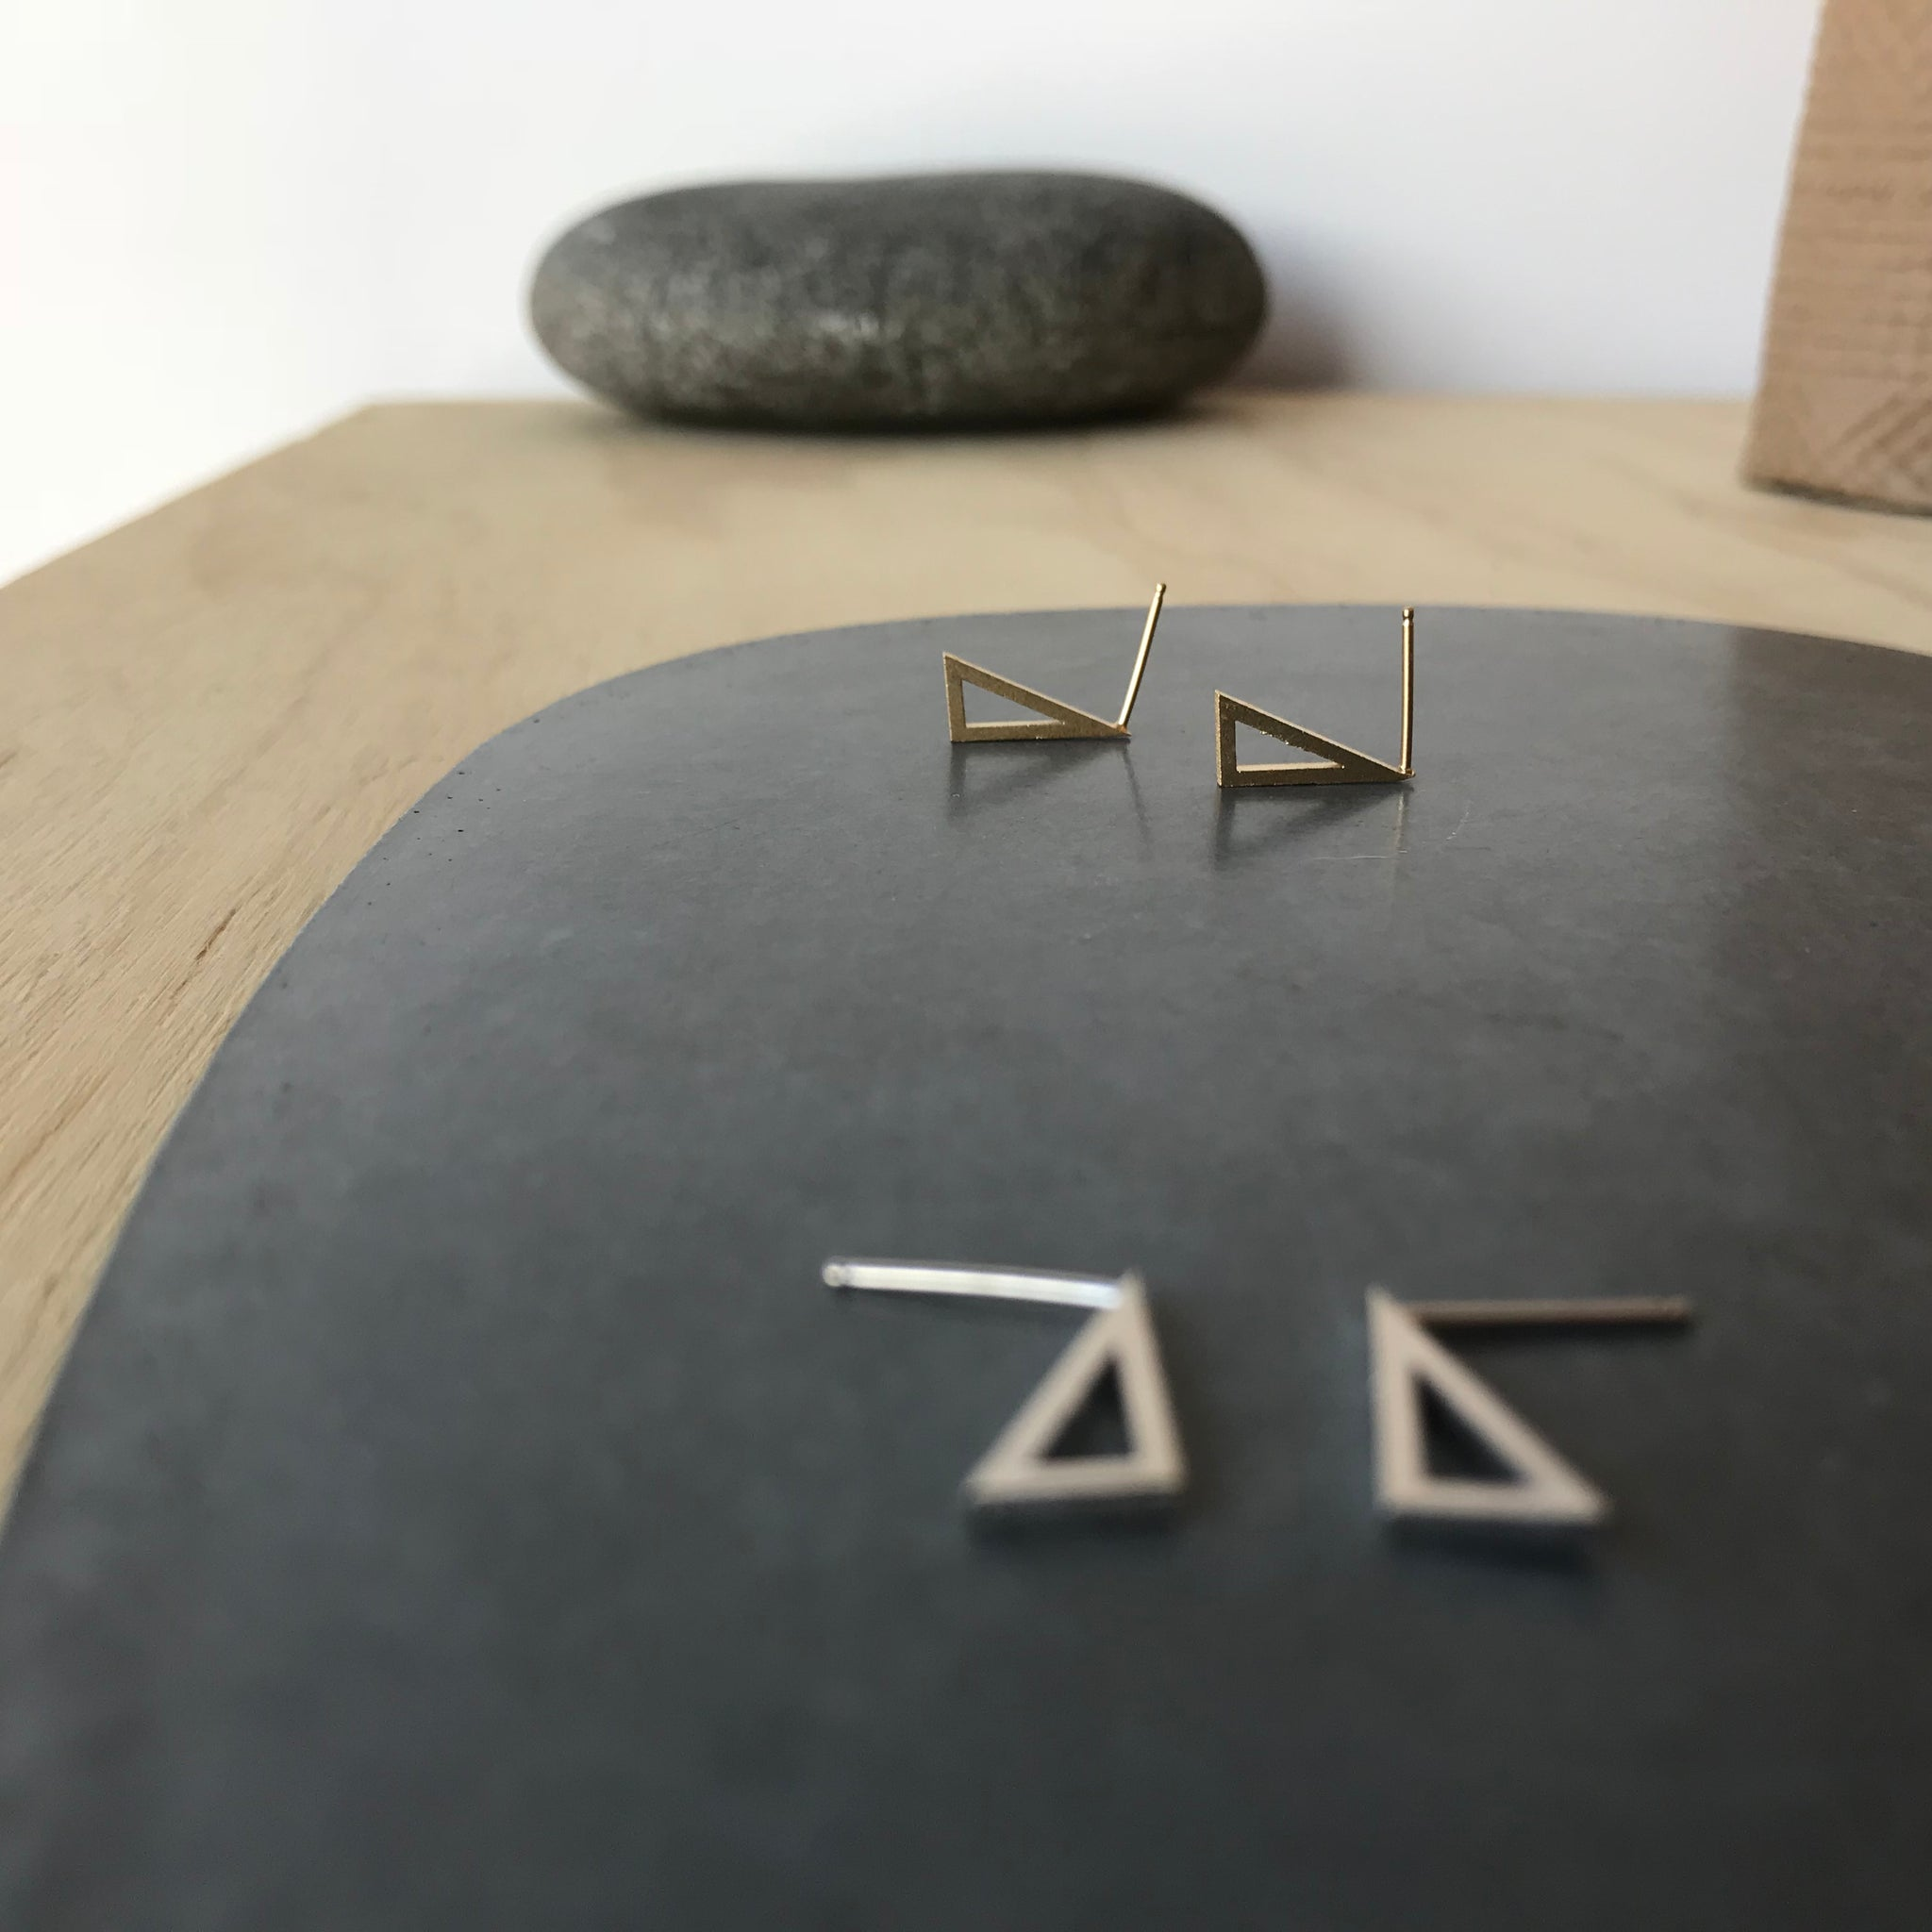 Mini Point Stud Earrings by Molly M